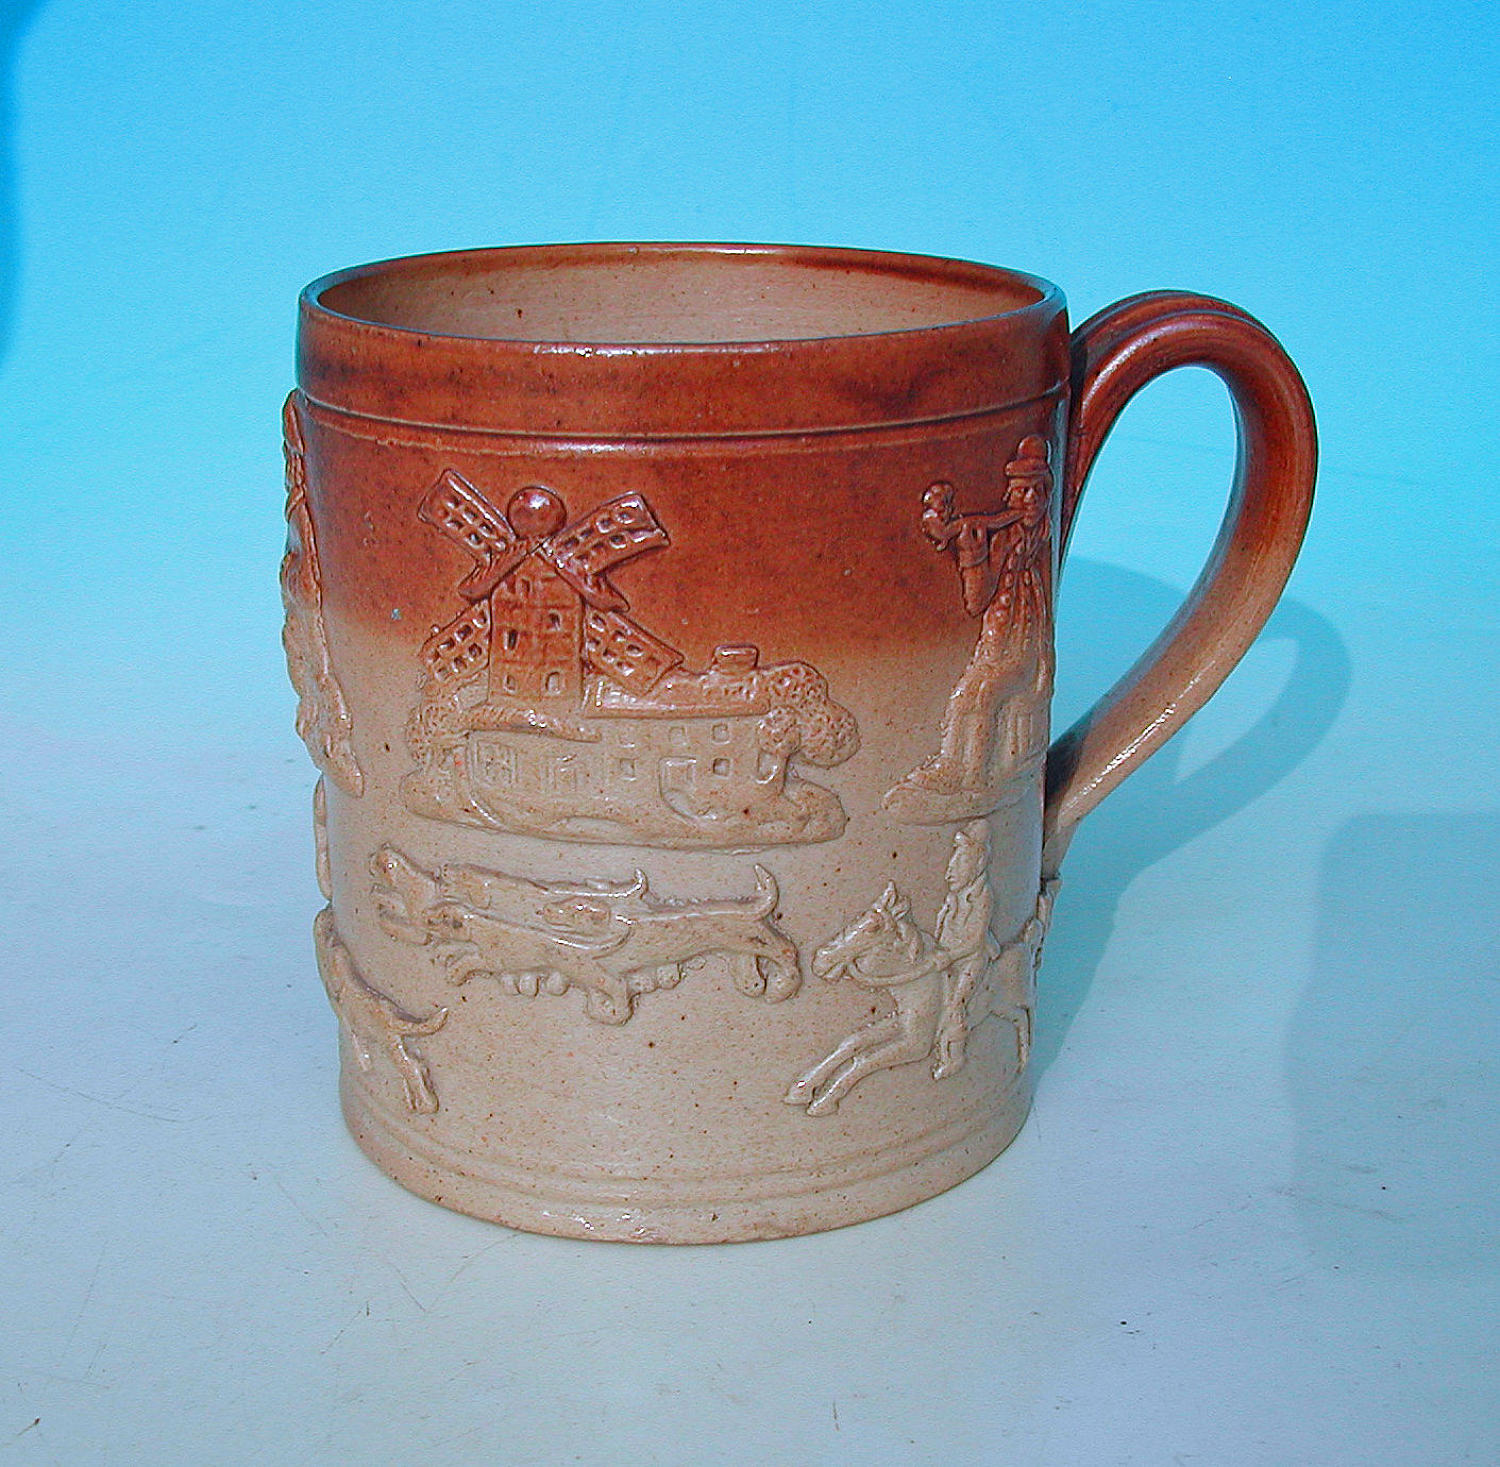 Antique Pottery 19thc Salt Glazed Lambeth Stoneware Mug. English. C184